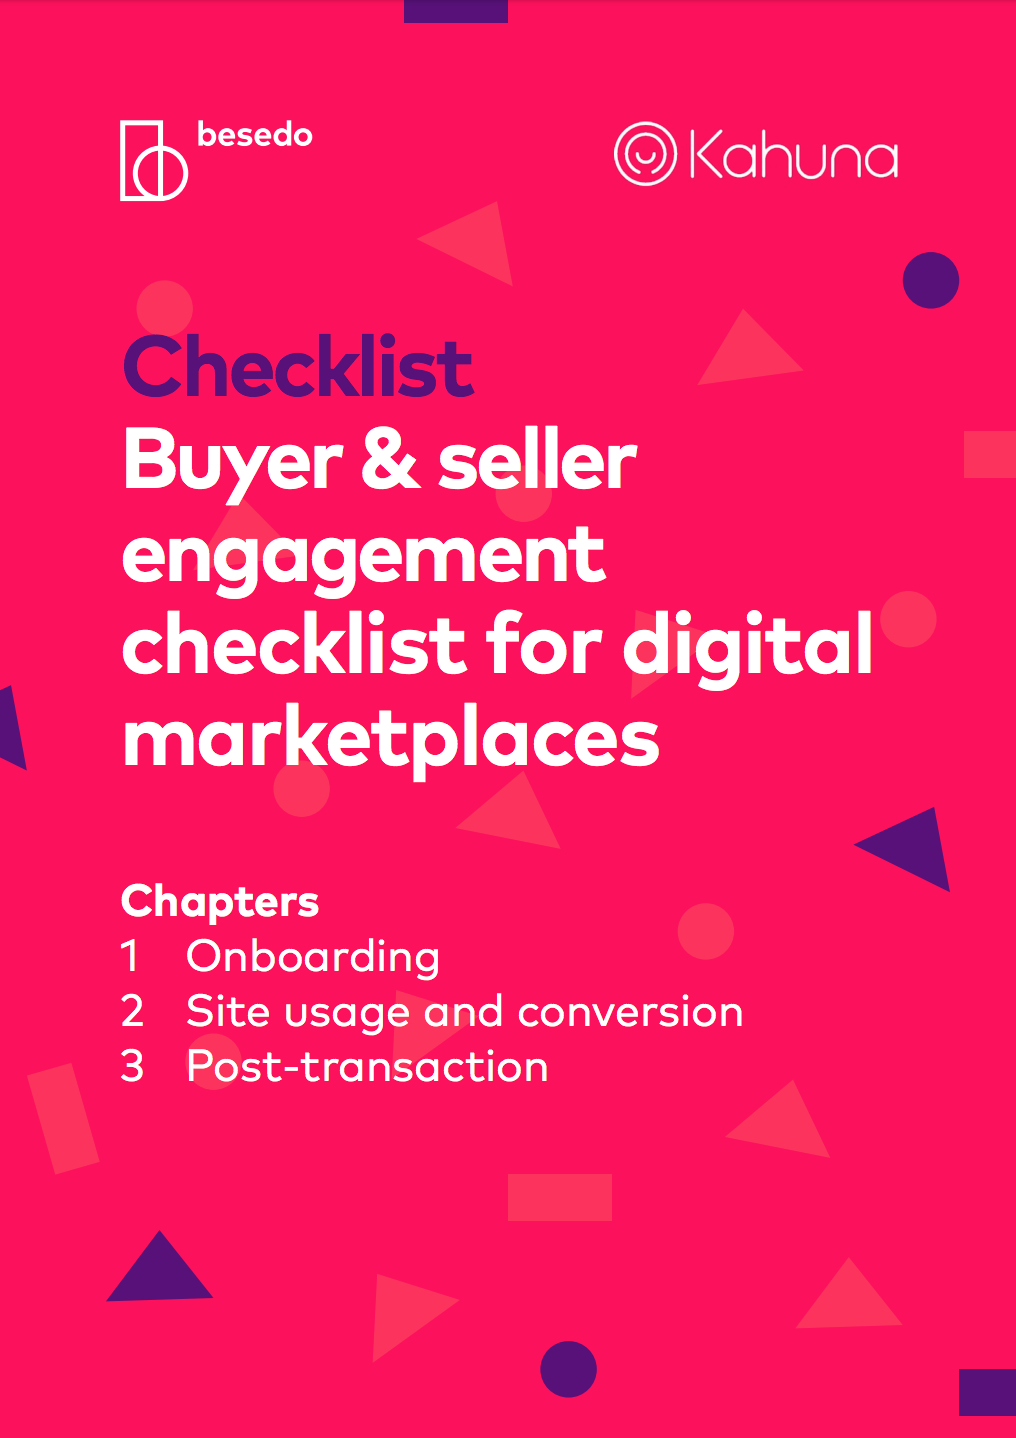 buyer & seller engagement checklist for digital marketplaces